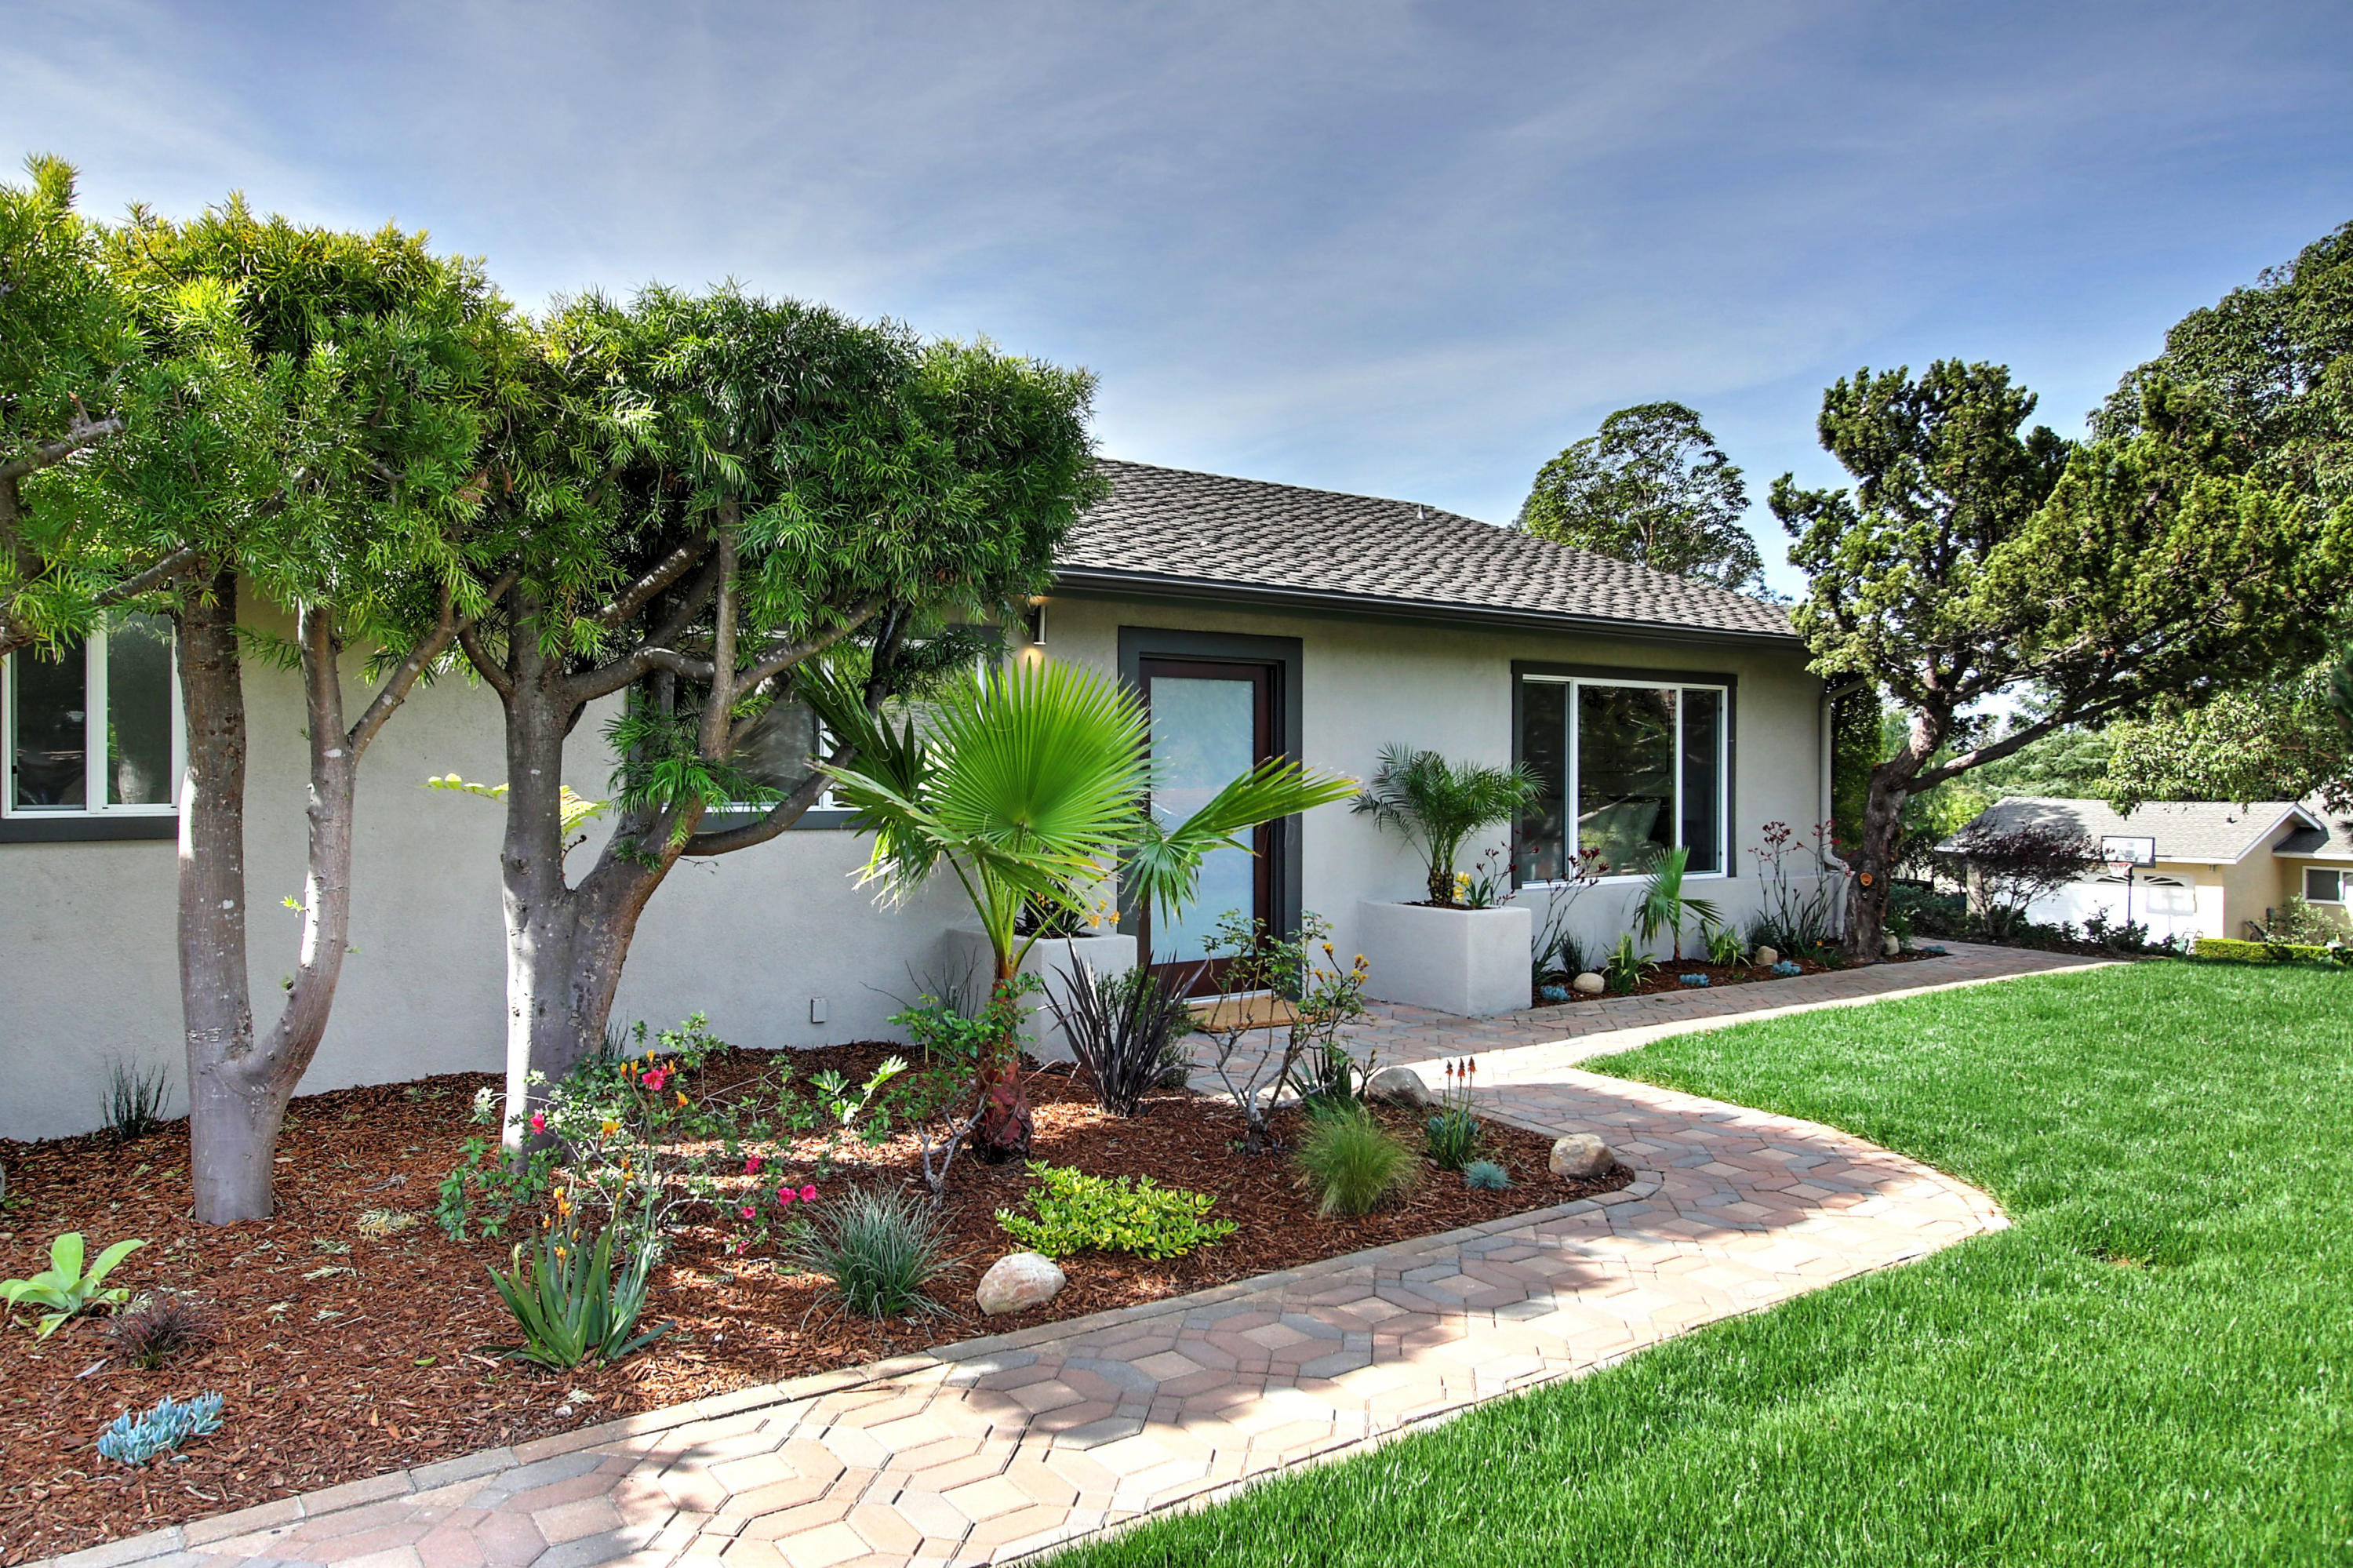 Property photo for 3837 Calle Cita Santa Barbara, California 93110 - 18-1222